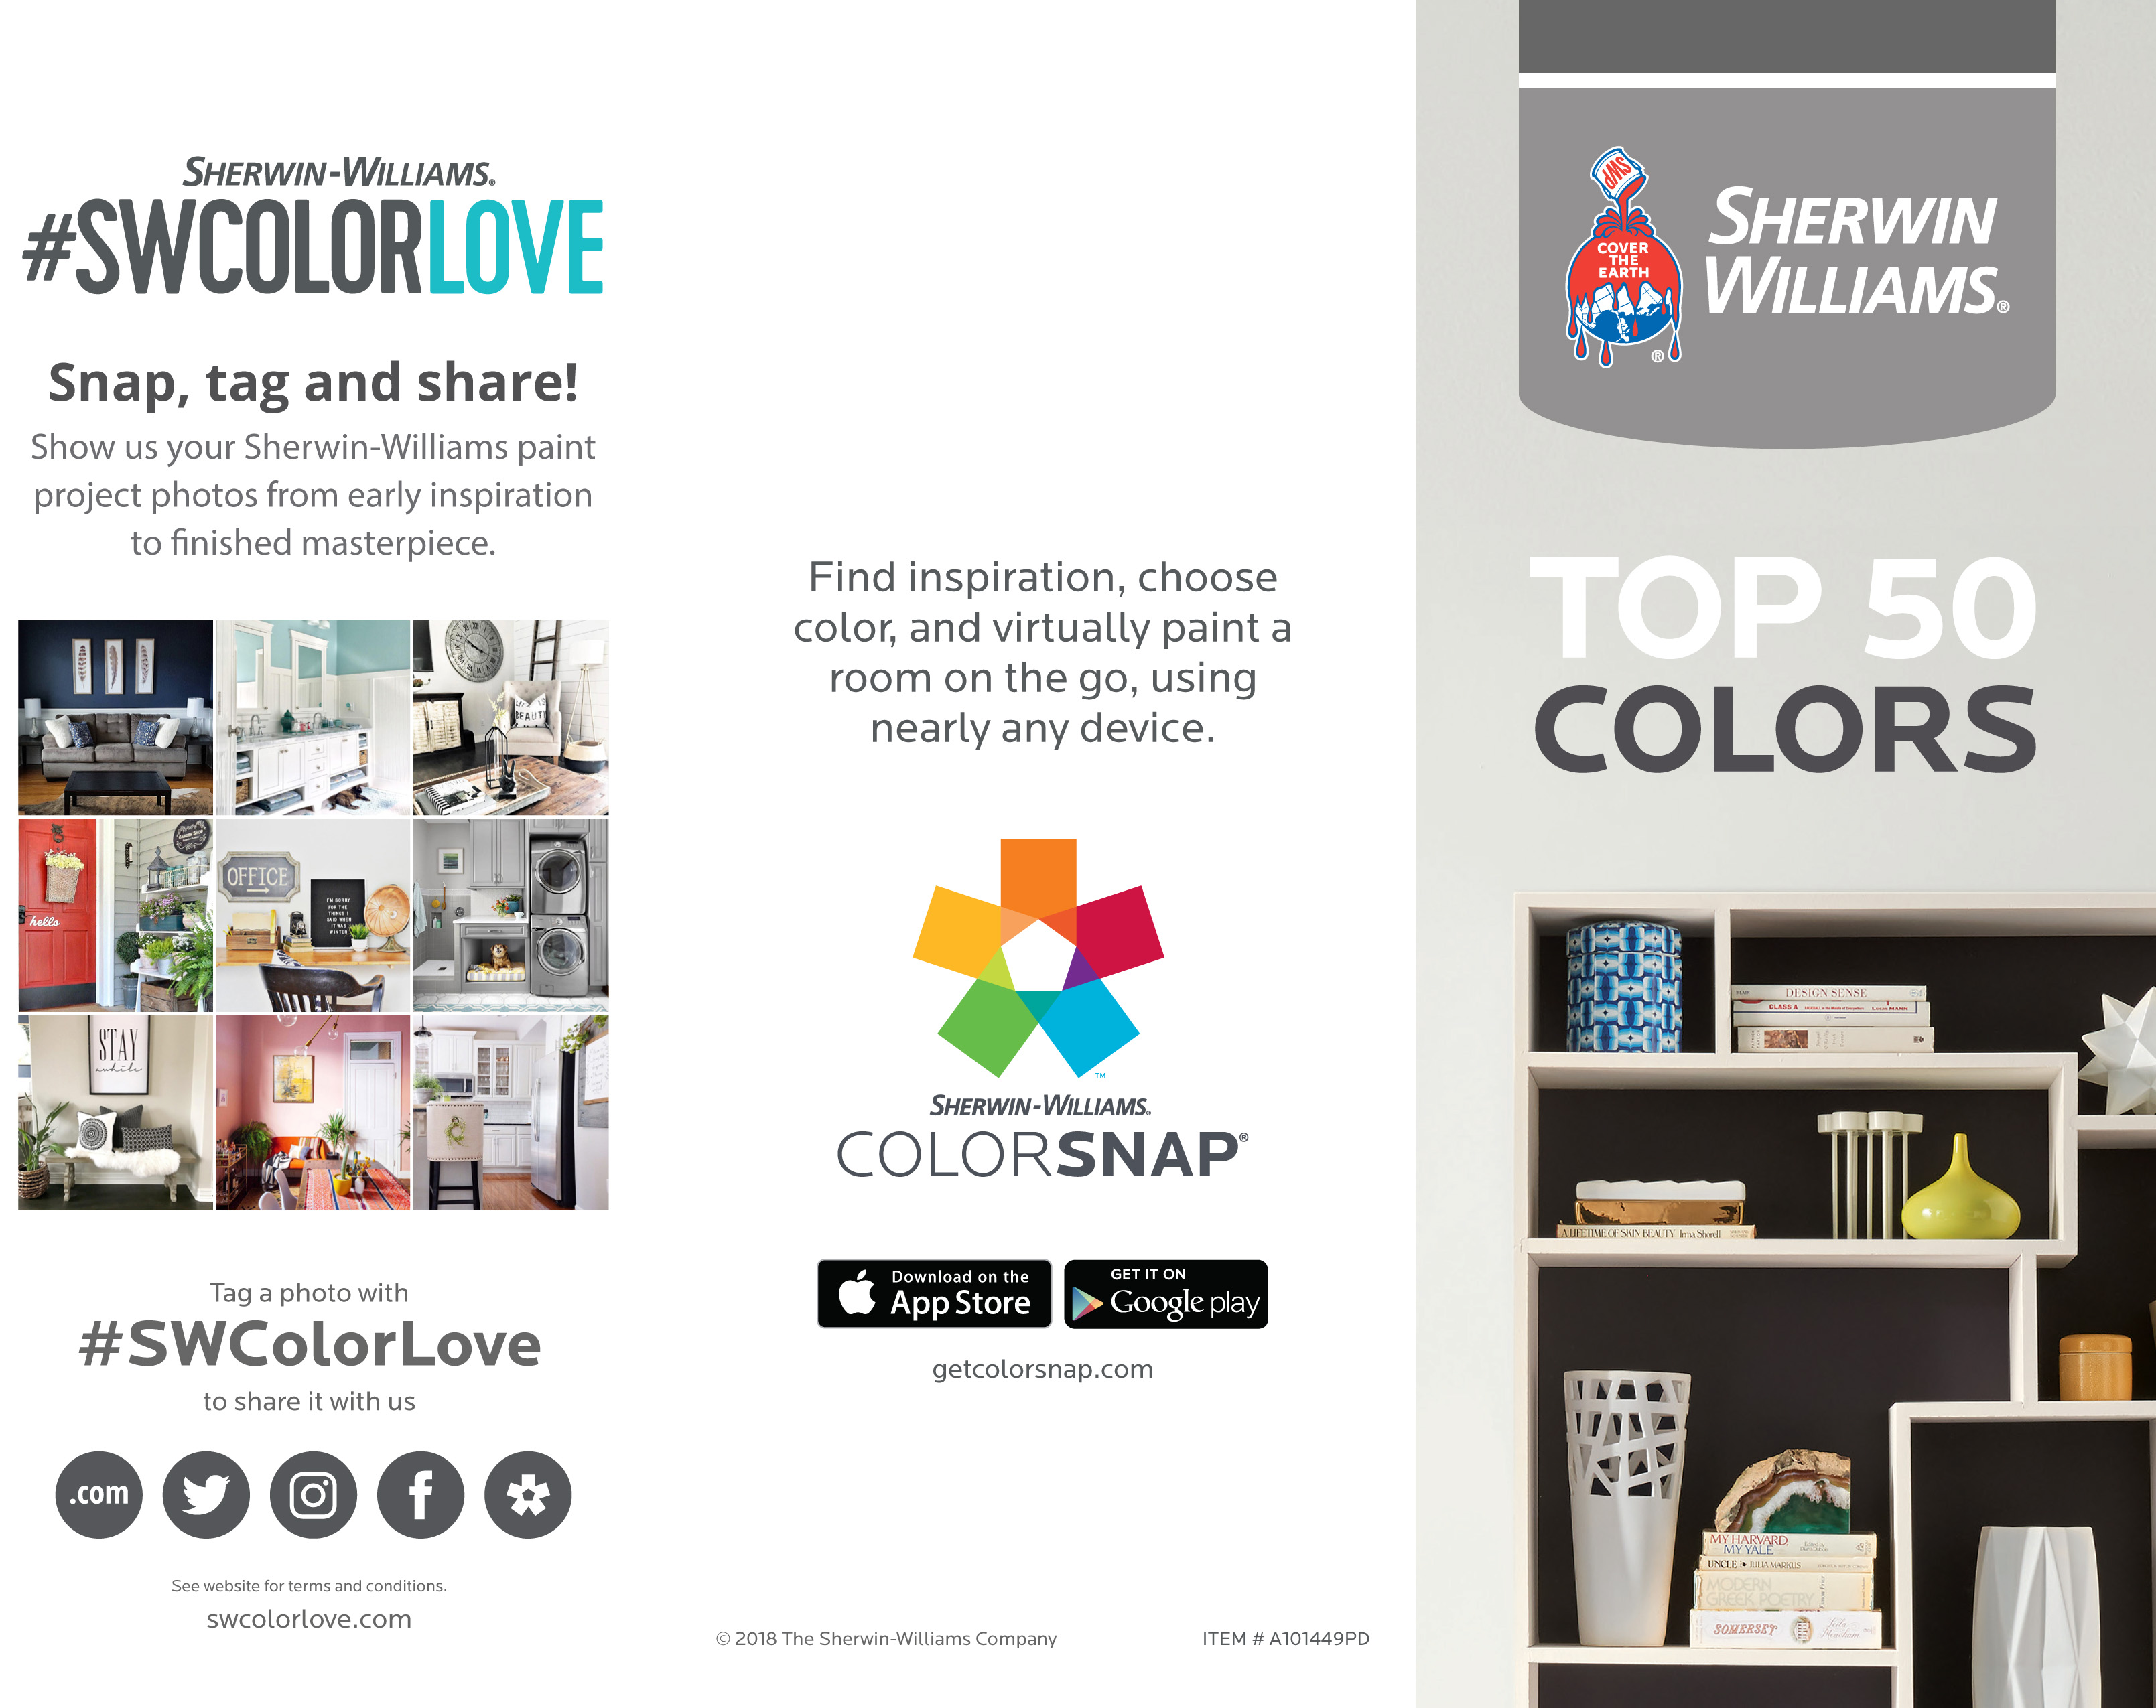 Sherwin Williams color infographic.